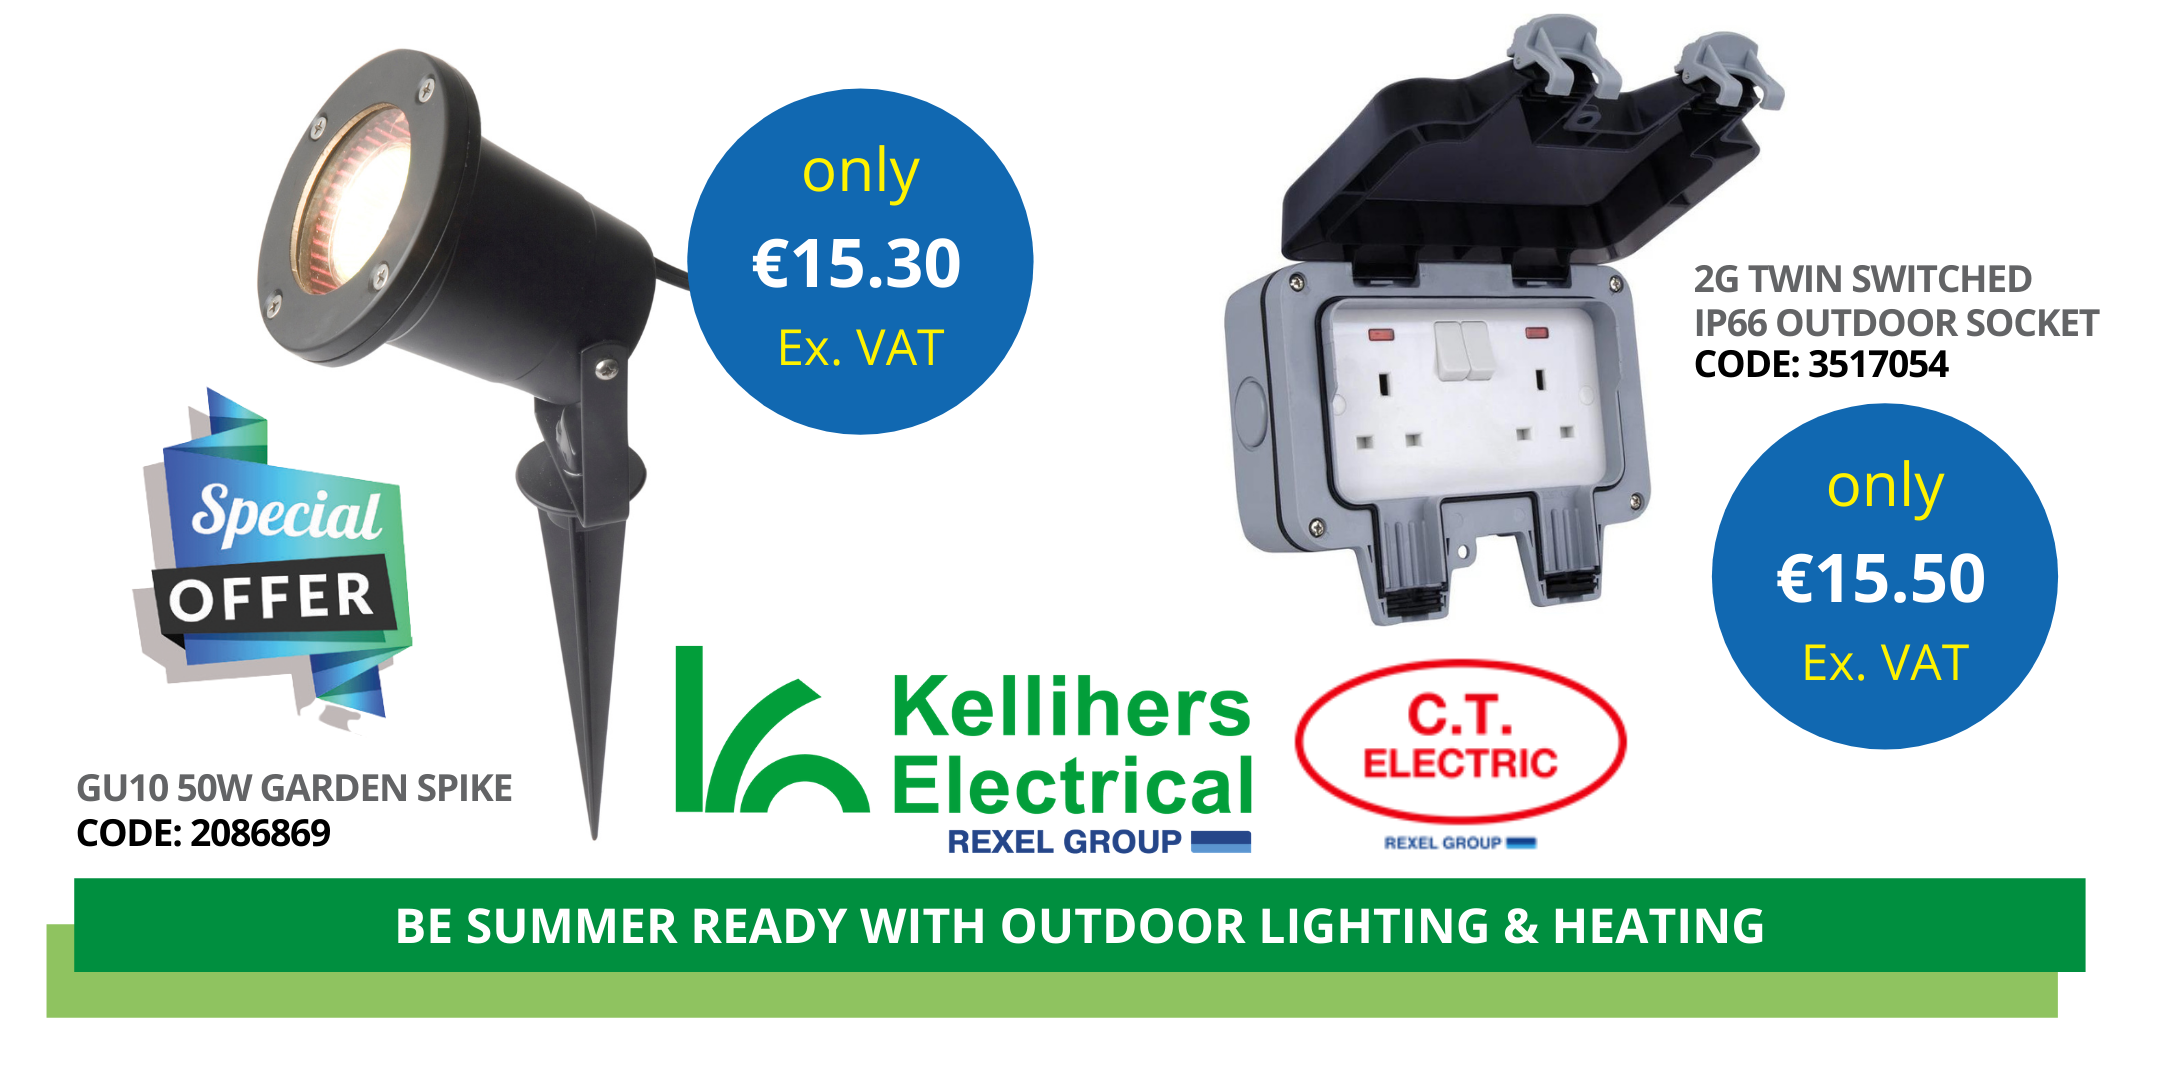 BE SUMMER READY WITH OUTDOOR LIGHTING & HEATING-1